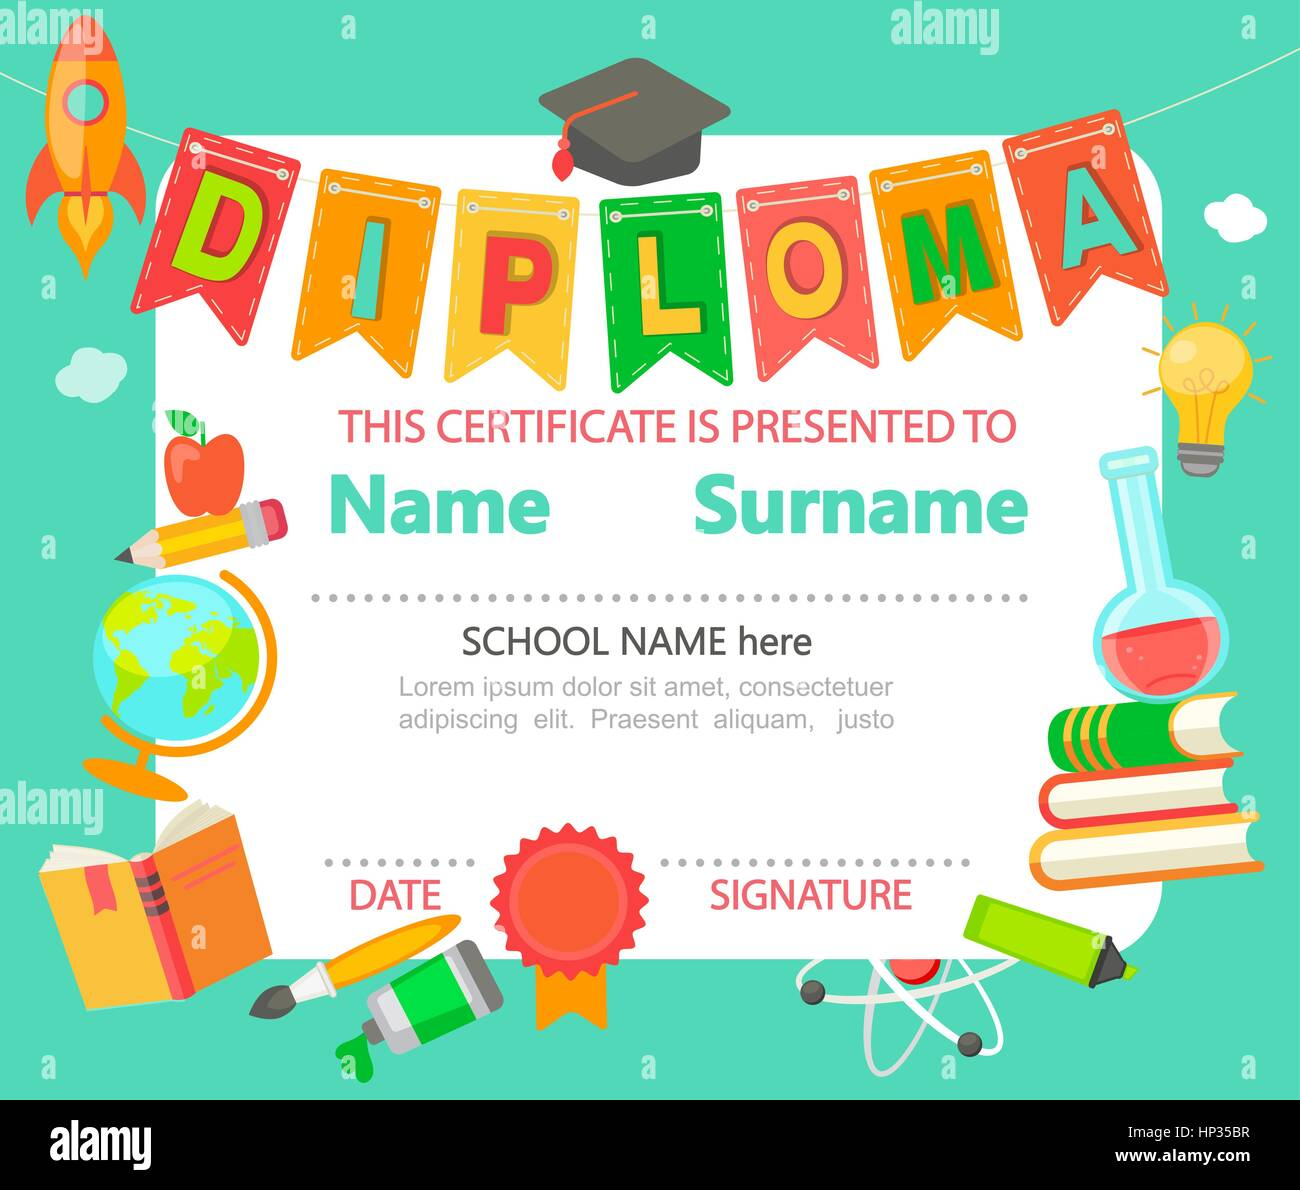 preschool diploma certificate template 6 the best template collection - Preschool Certificate Template